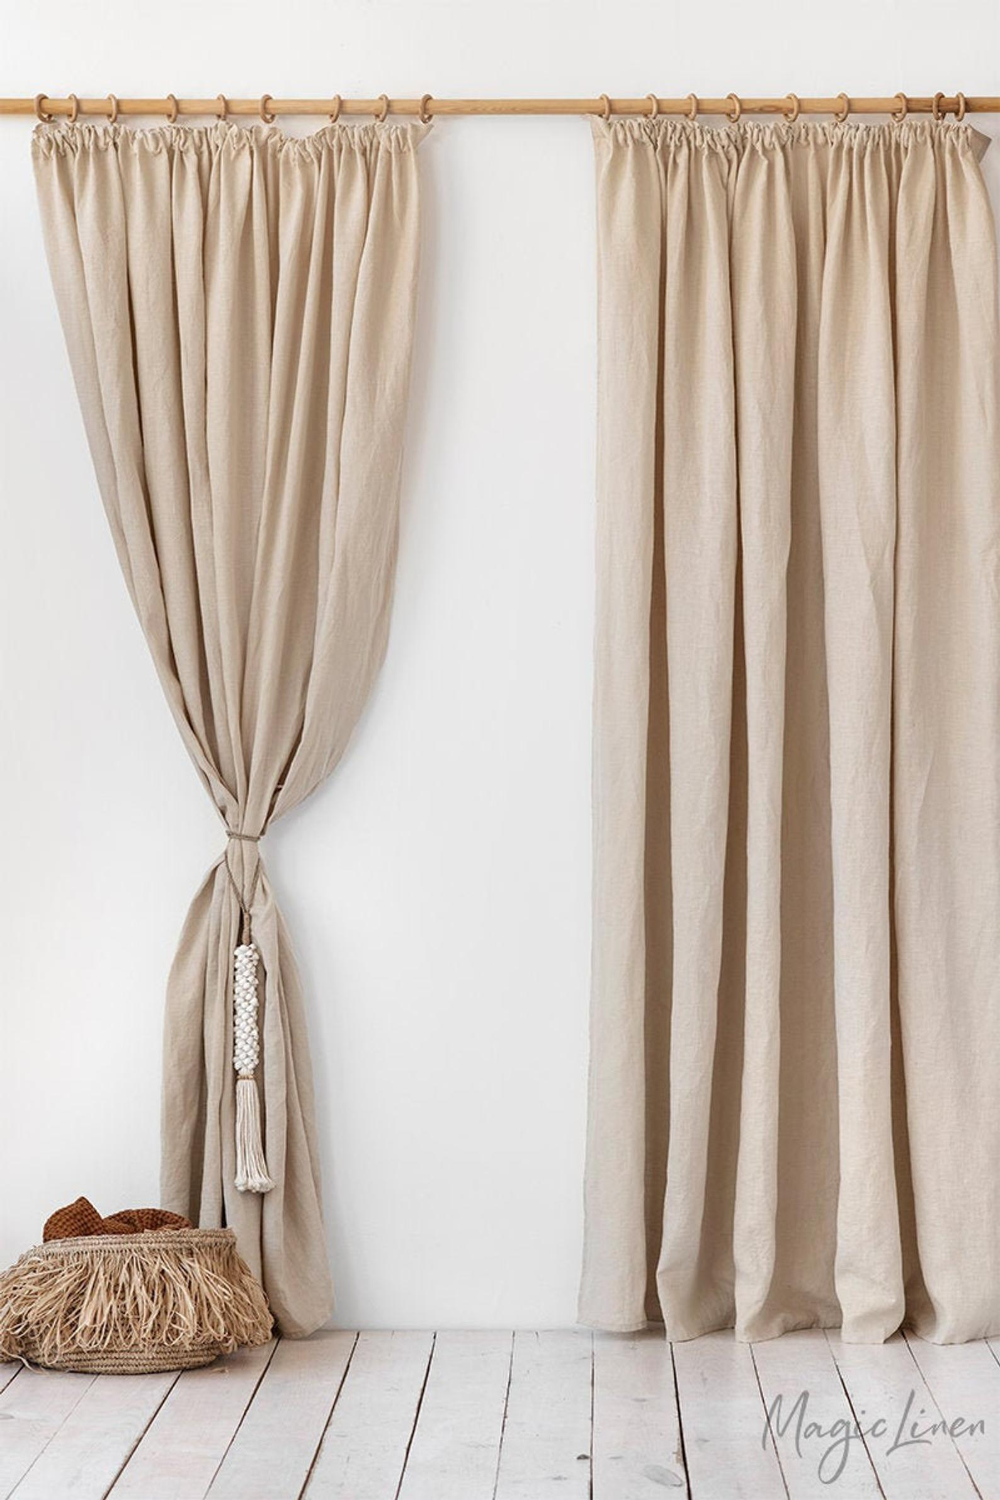 Pencil Pleat Linen Curtain Panel Washed Linen Curtains With Header Tape Custom Hook Drapes In 2020 Linen Curtains Linen Curtain Panels Pencil Pleat